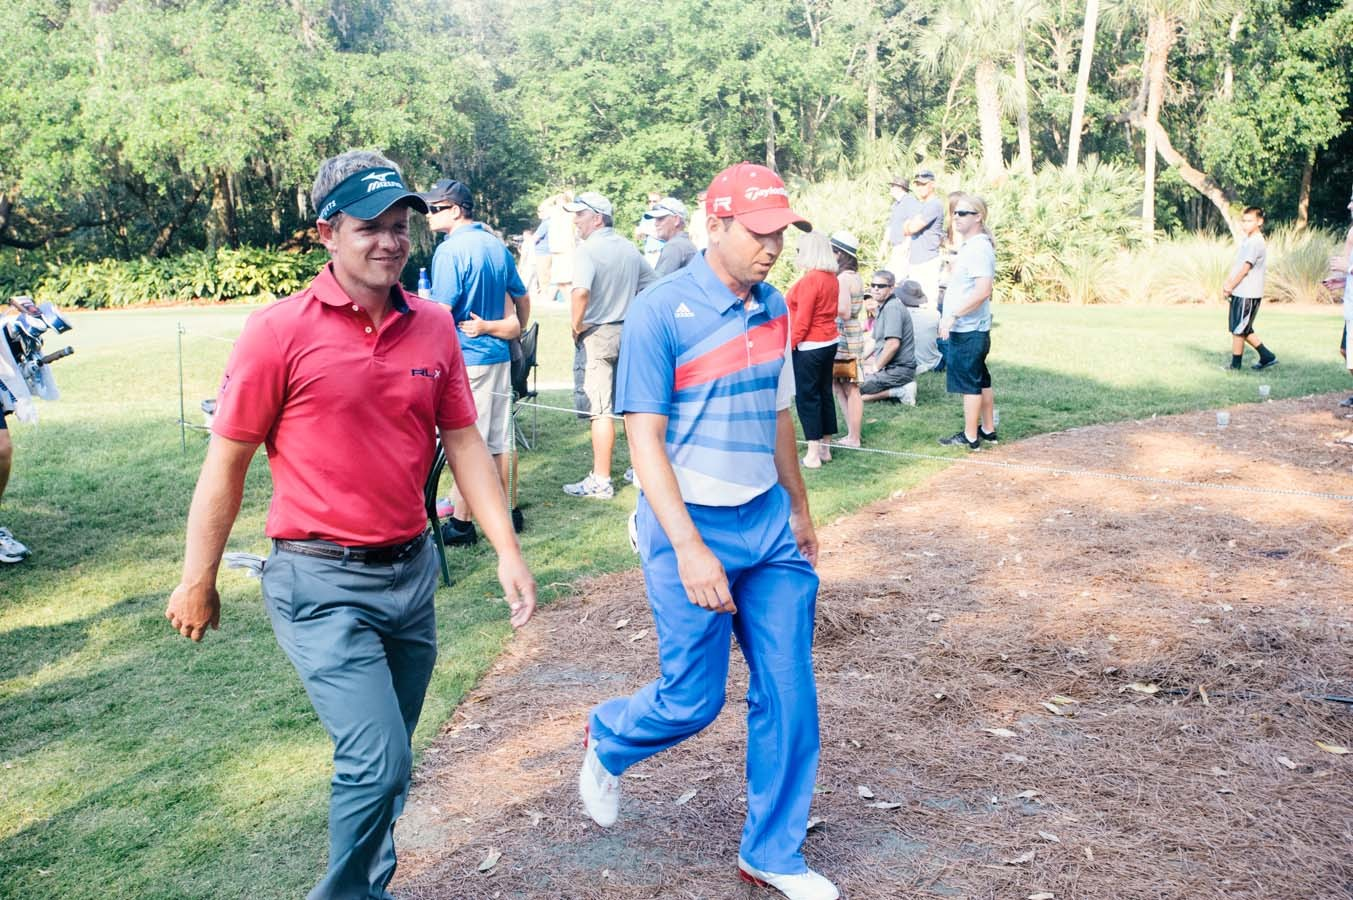 Luke Donald and Sergio Garcia walk to the 12th hole together.